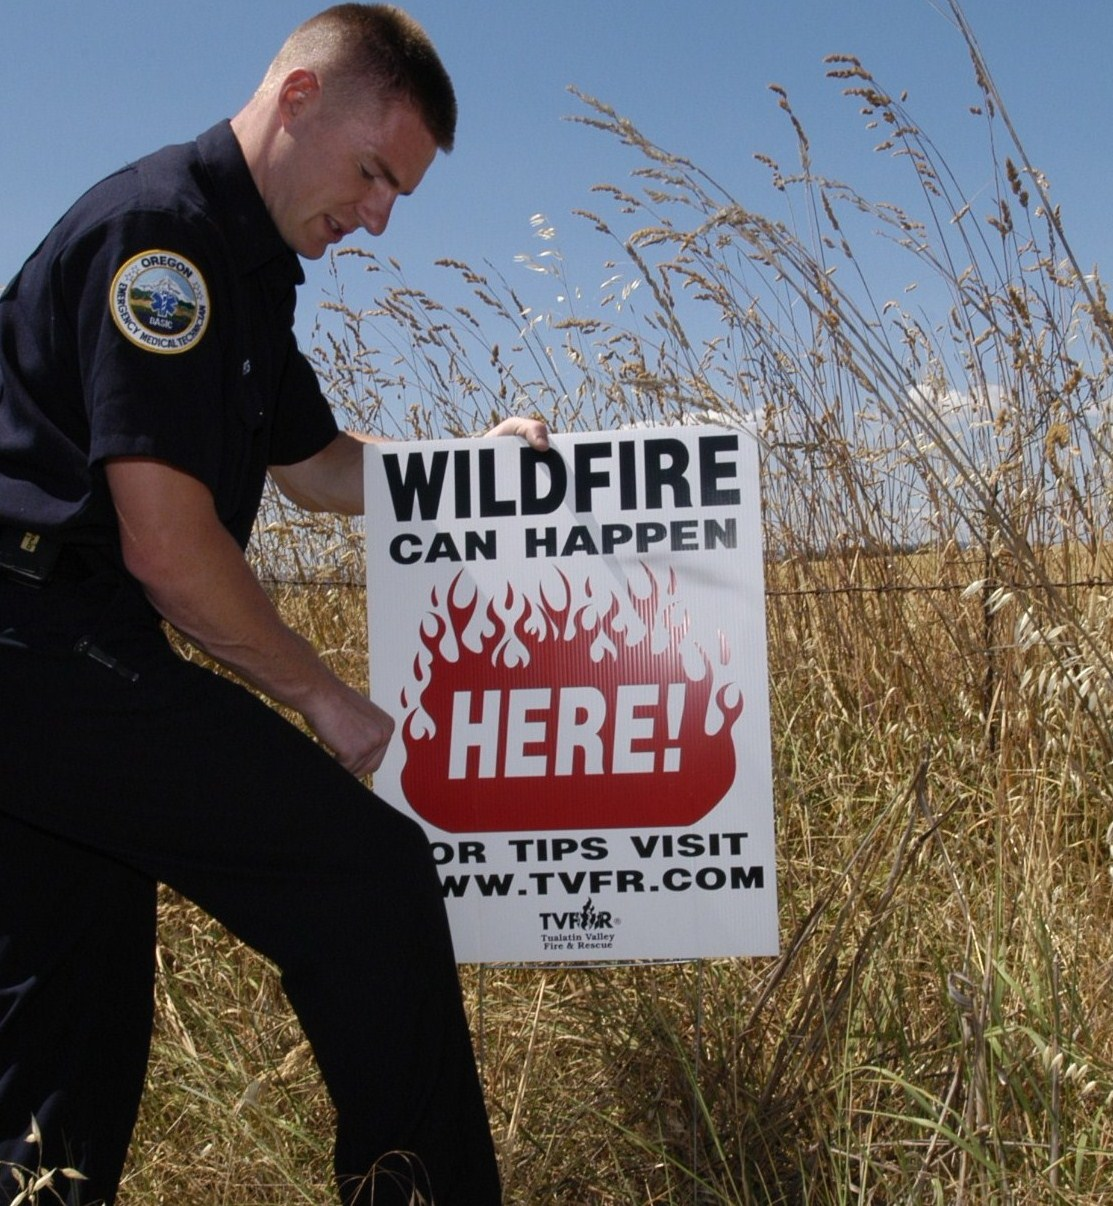 crew with wildfire sign cropped.jpg